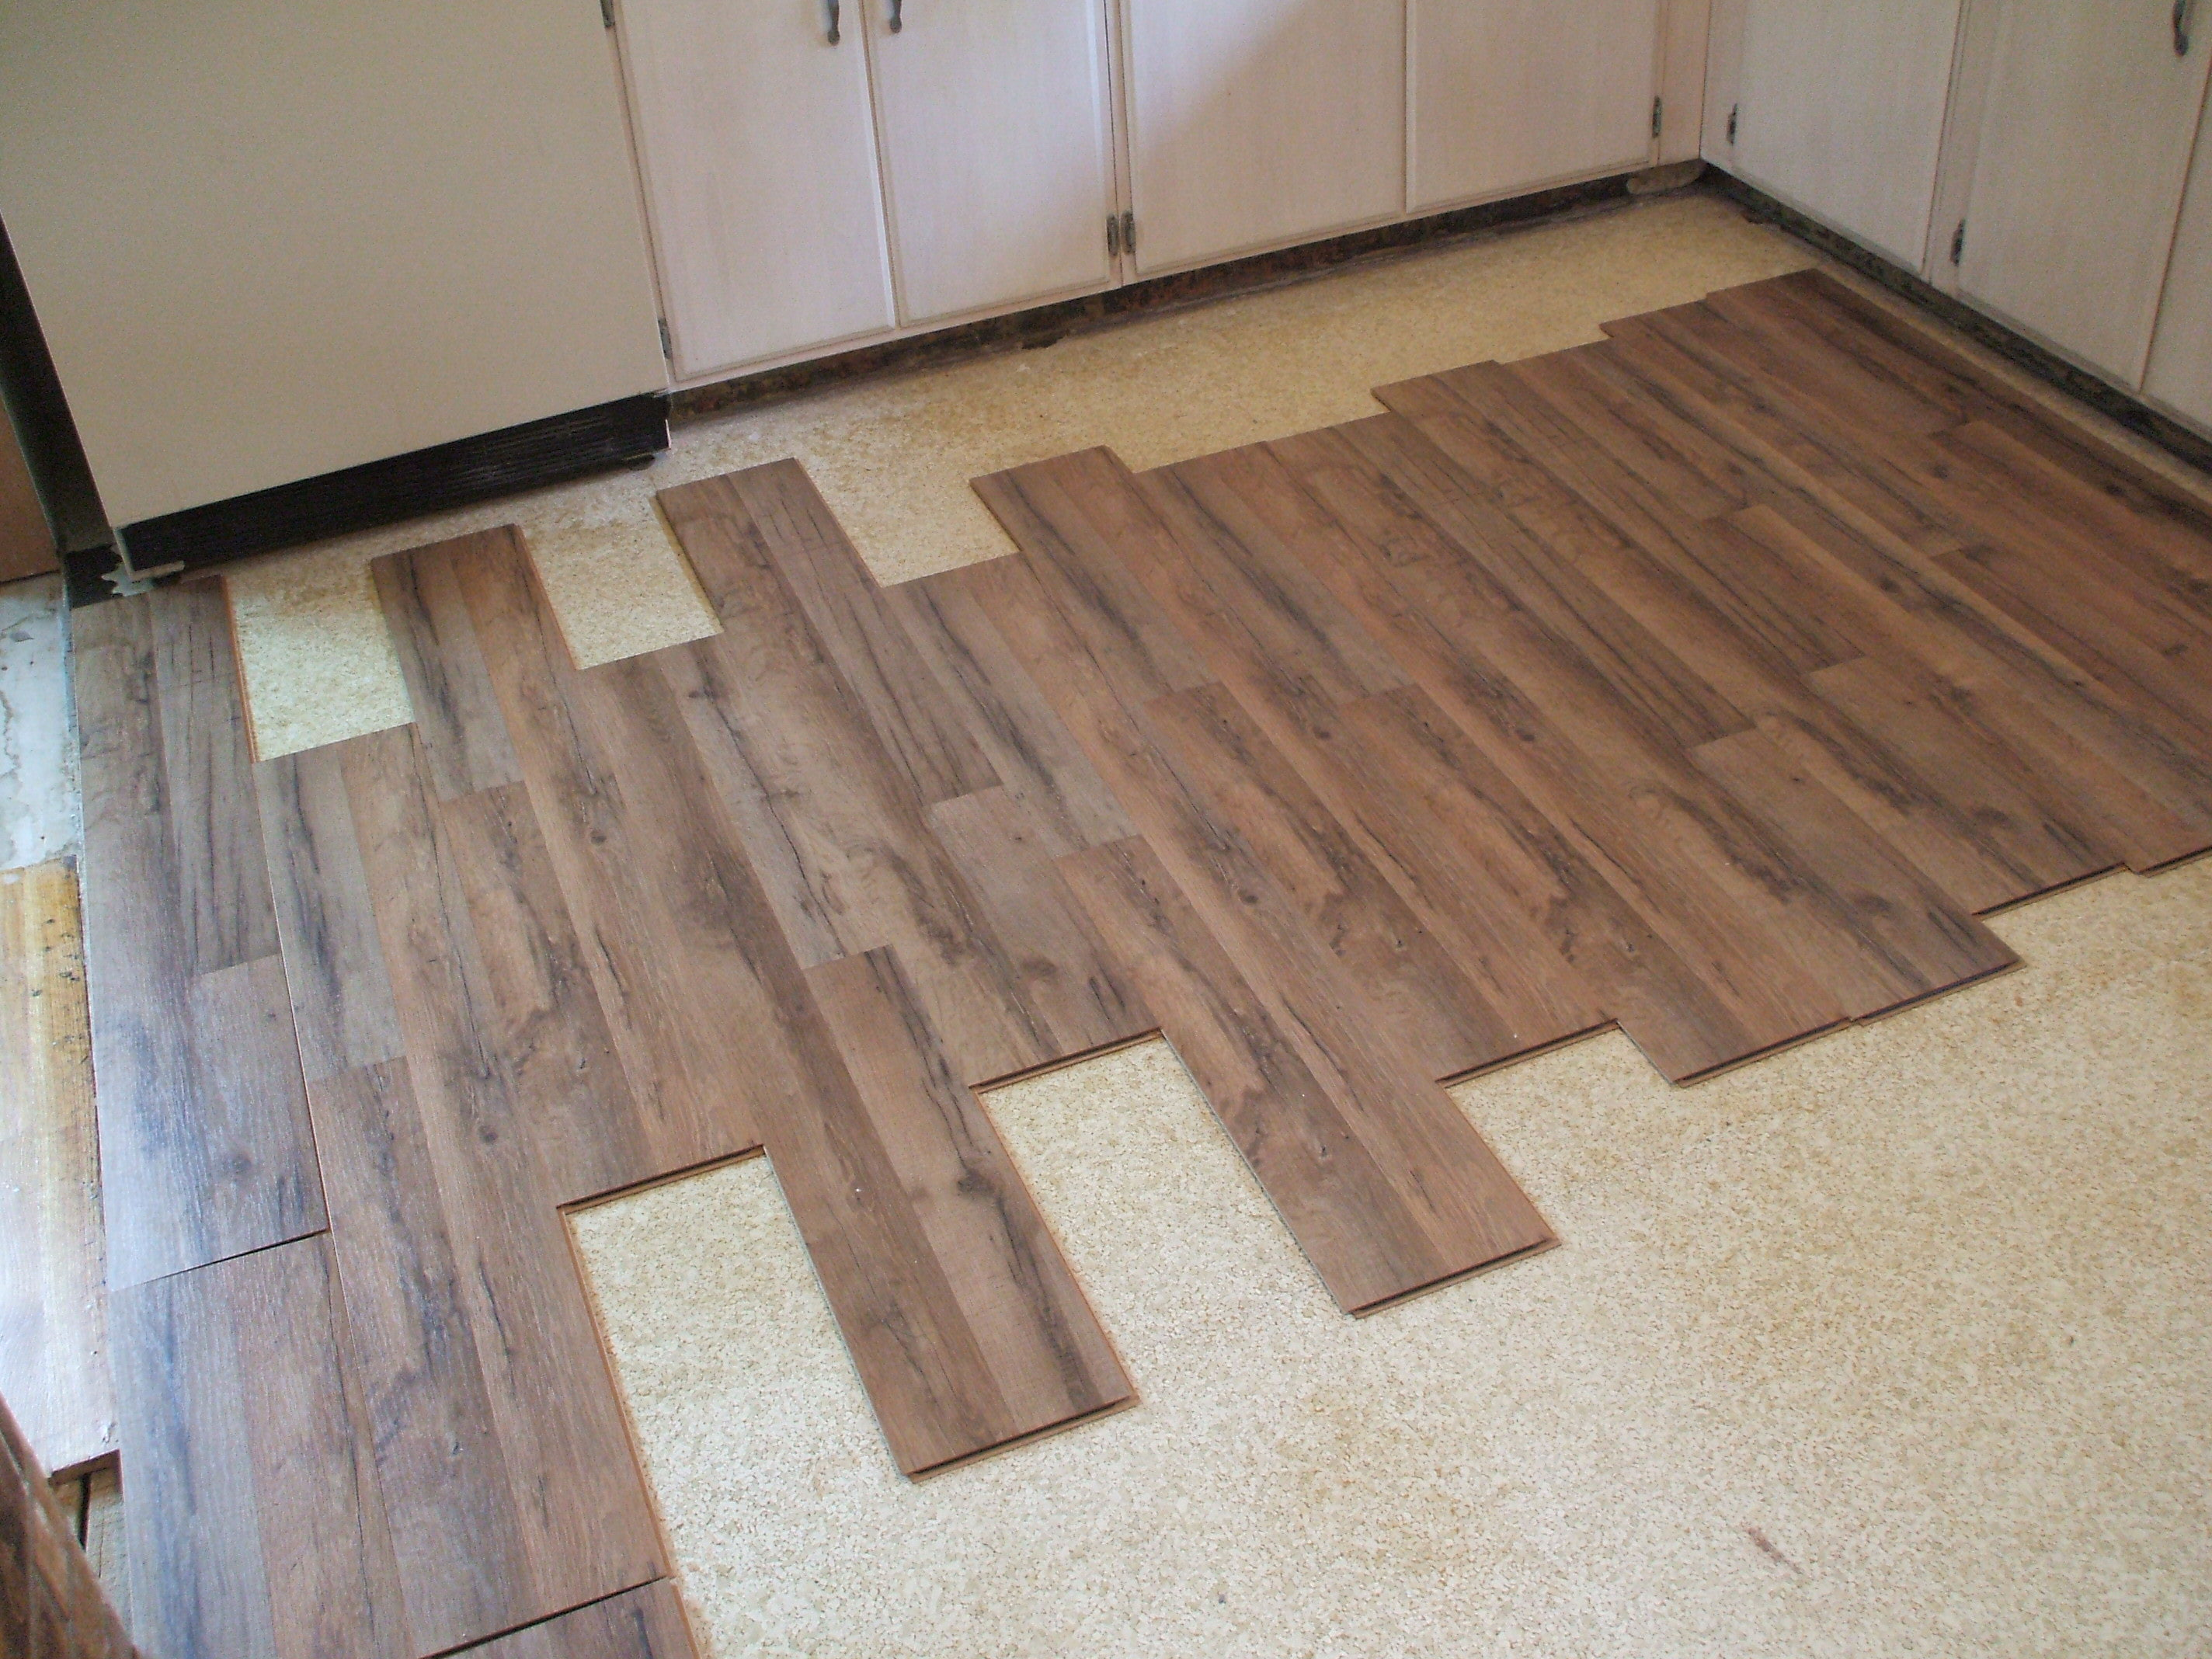 Laminate Flooring In Kitchens Flooring Options For Your Rental Home Which Is Best